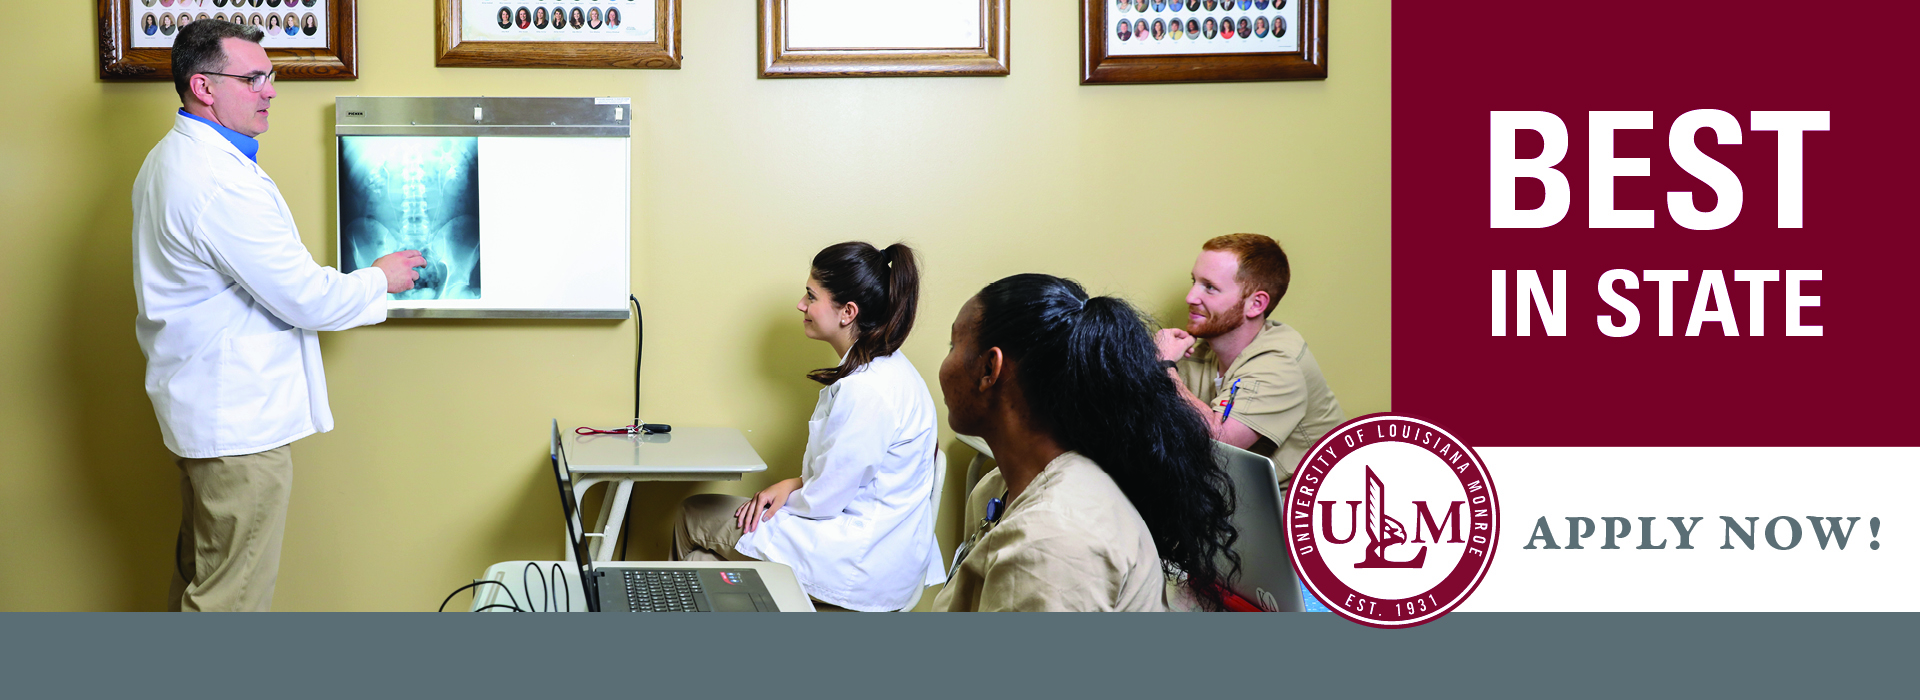 Radiologic Technology Program banner ad